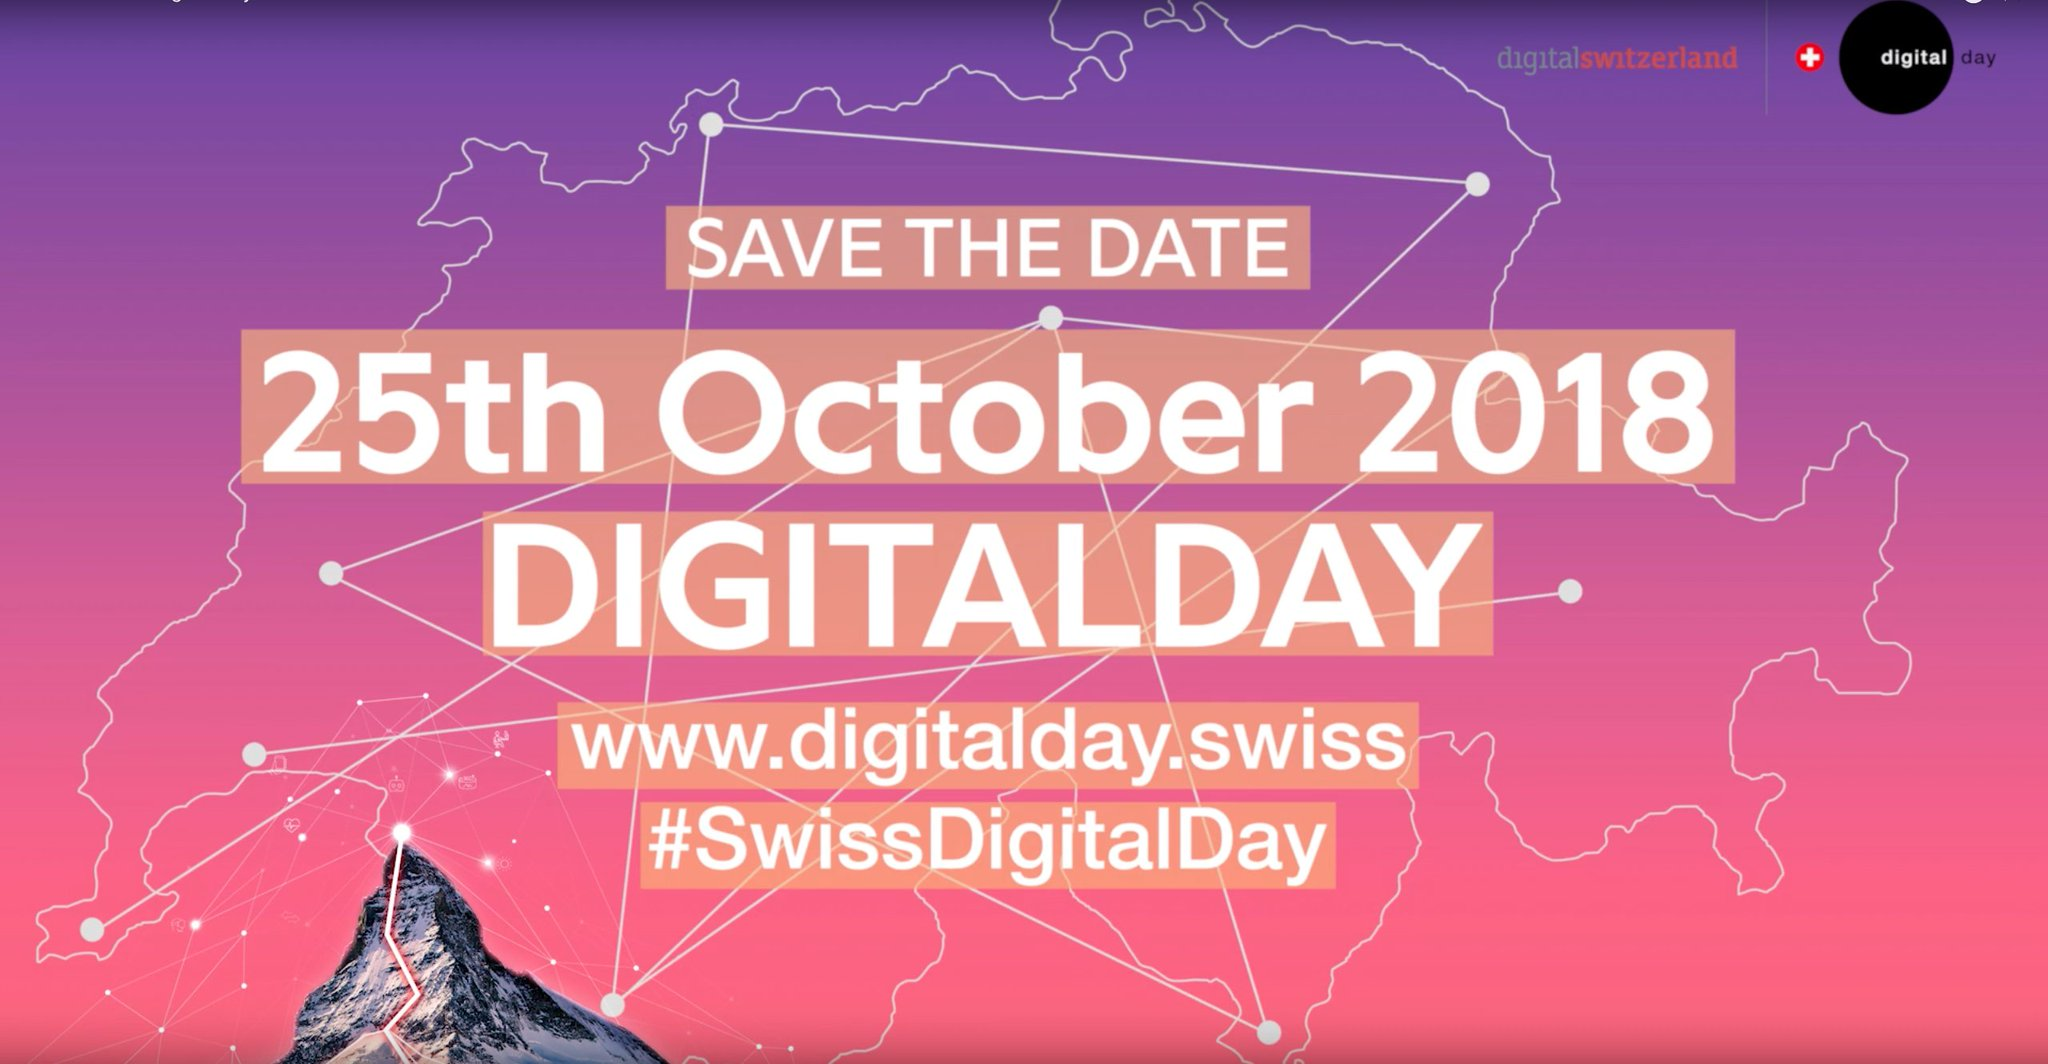 The #EPFLDigitalDay will take place on 25.10: workshops, demos, exhibitions, and presentation of the #DiscoveryLearningLabs, #VeniceTimeMachine, #BlueBrainProject and the @MontreuxJazz archives @EPFLArtLab. @octanisorg @firmtechnology @DariusRochebin @EPFLevents #SwissDigitalDay https://t.co/P9B1J7HmVI